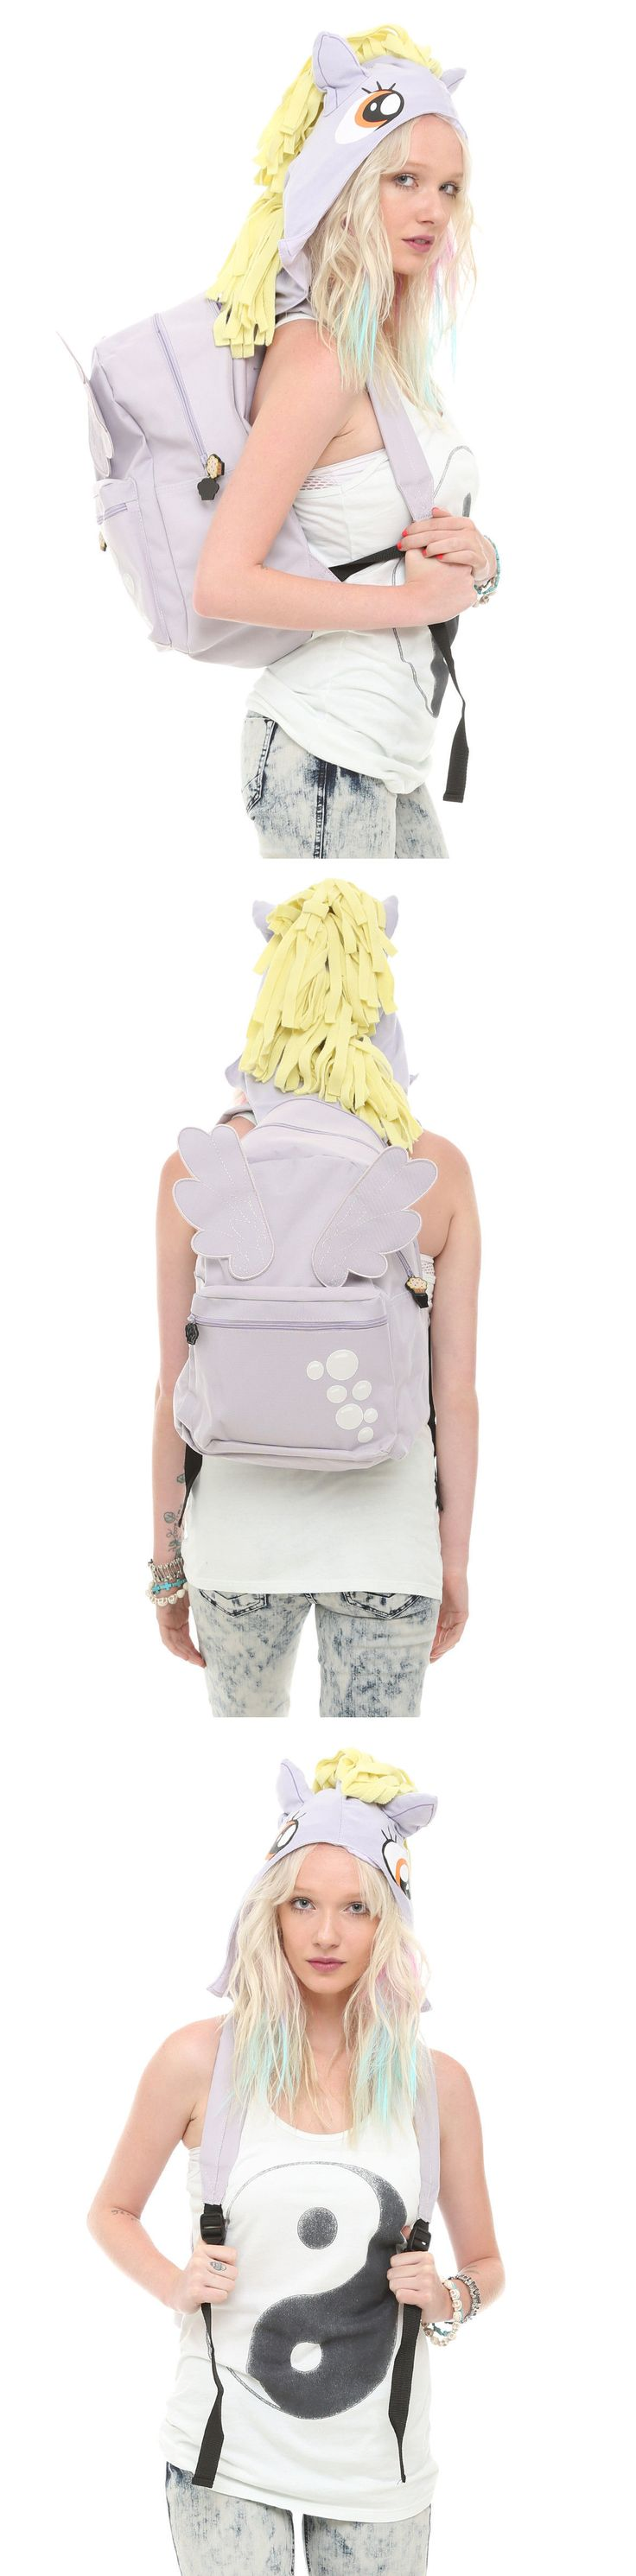 1990-Now 47228: My Little Pony Muffins Derpy Hooves Hooded Hoodie Mane Backpack Bronies Gift New -> BUY IT NOW ONLY: $37.5 on eBay!